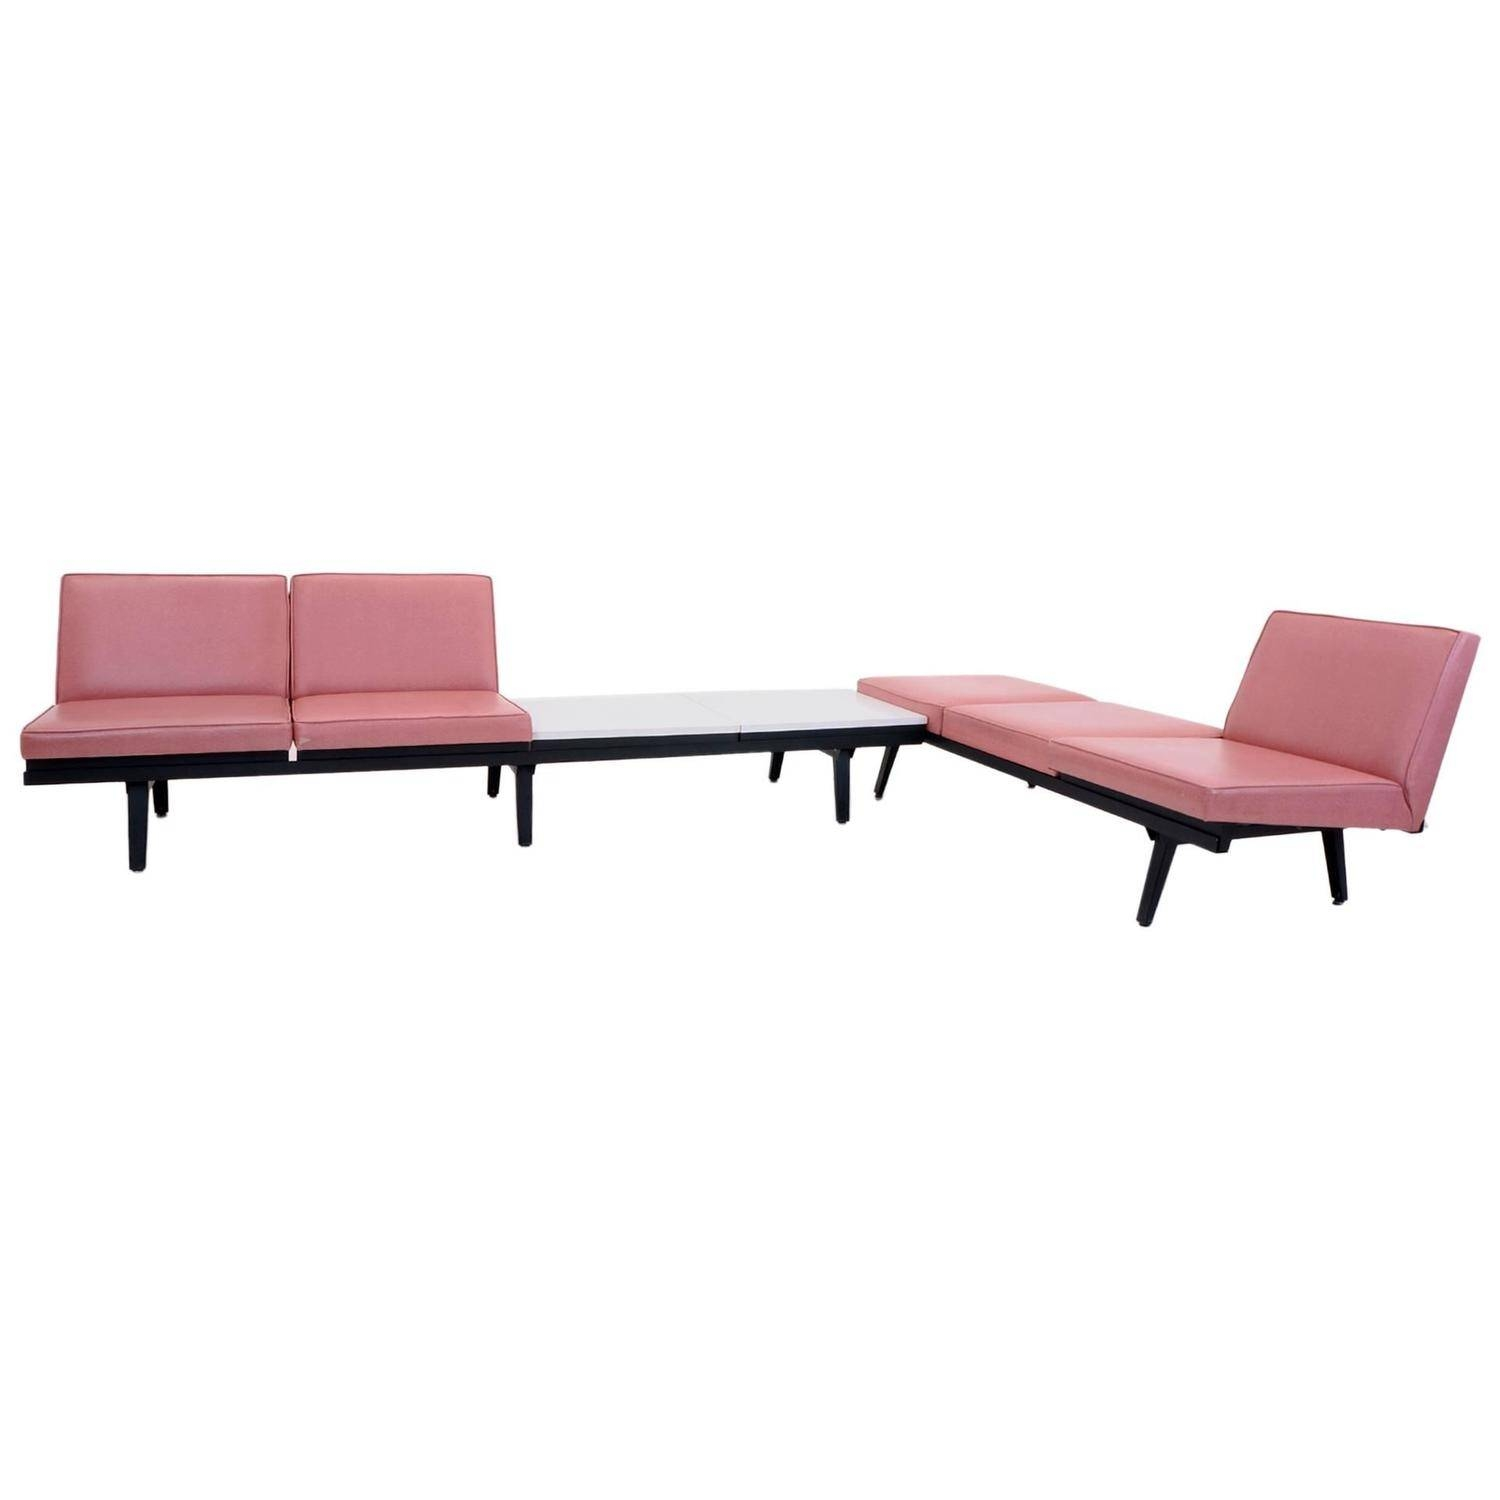 Pair Of George Nelson For Herman Miller Steel Frame Sofas for George Nelson Sofas (Image 14 of 15)